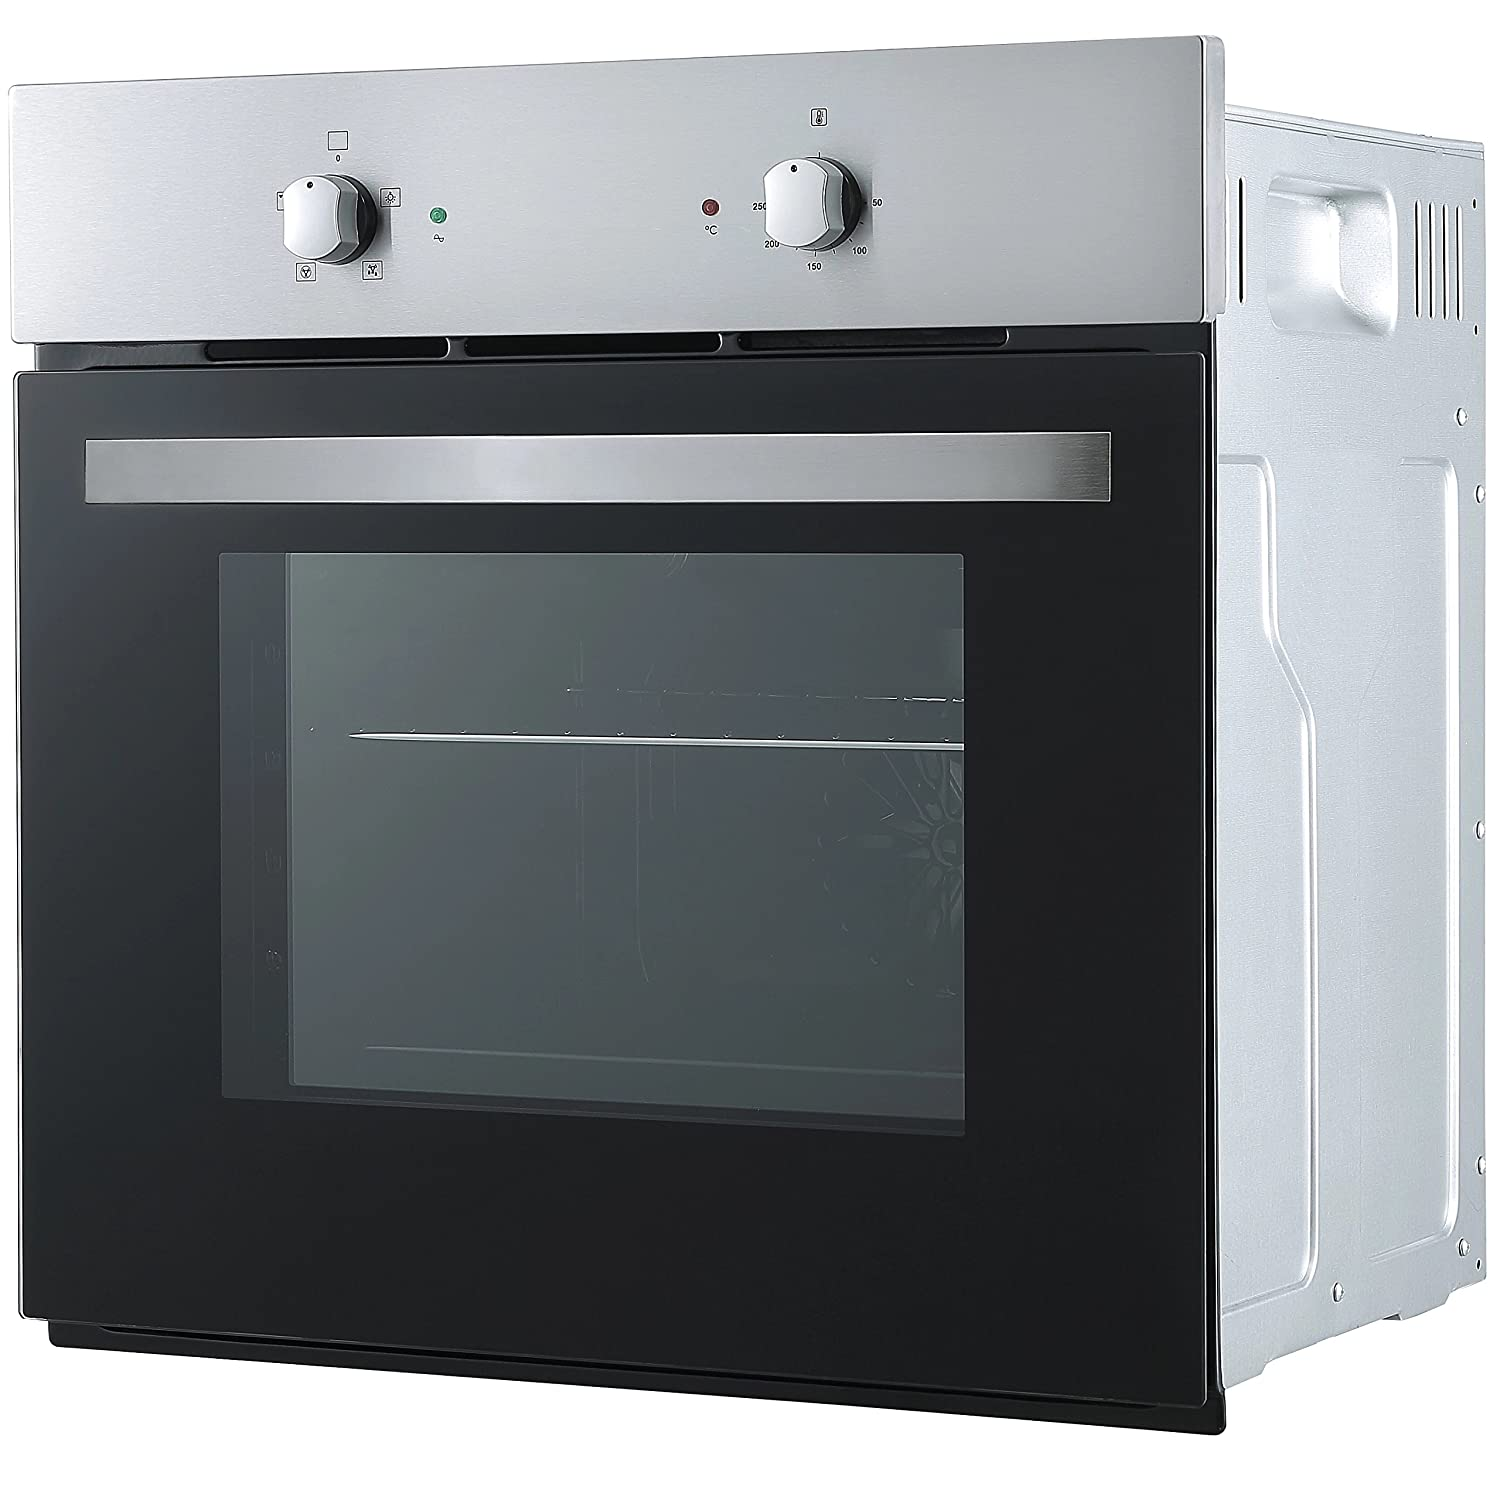 Cookology SFO57SS 60cm Built-in Single Electric Fan Oven in Stainless Steel [Energy Class A+]